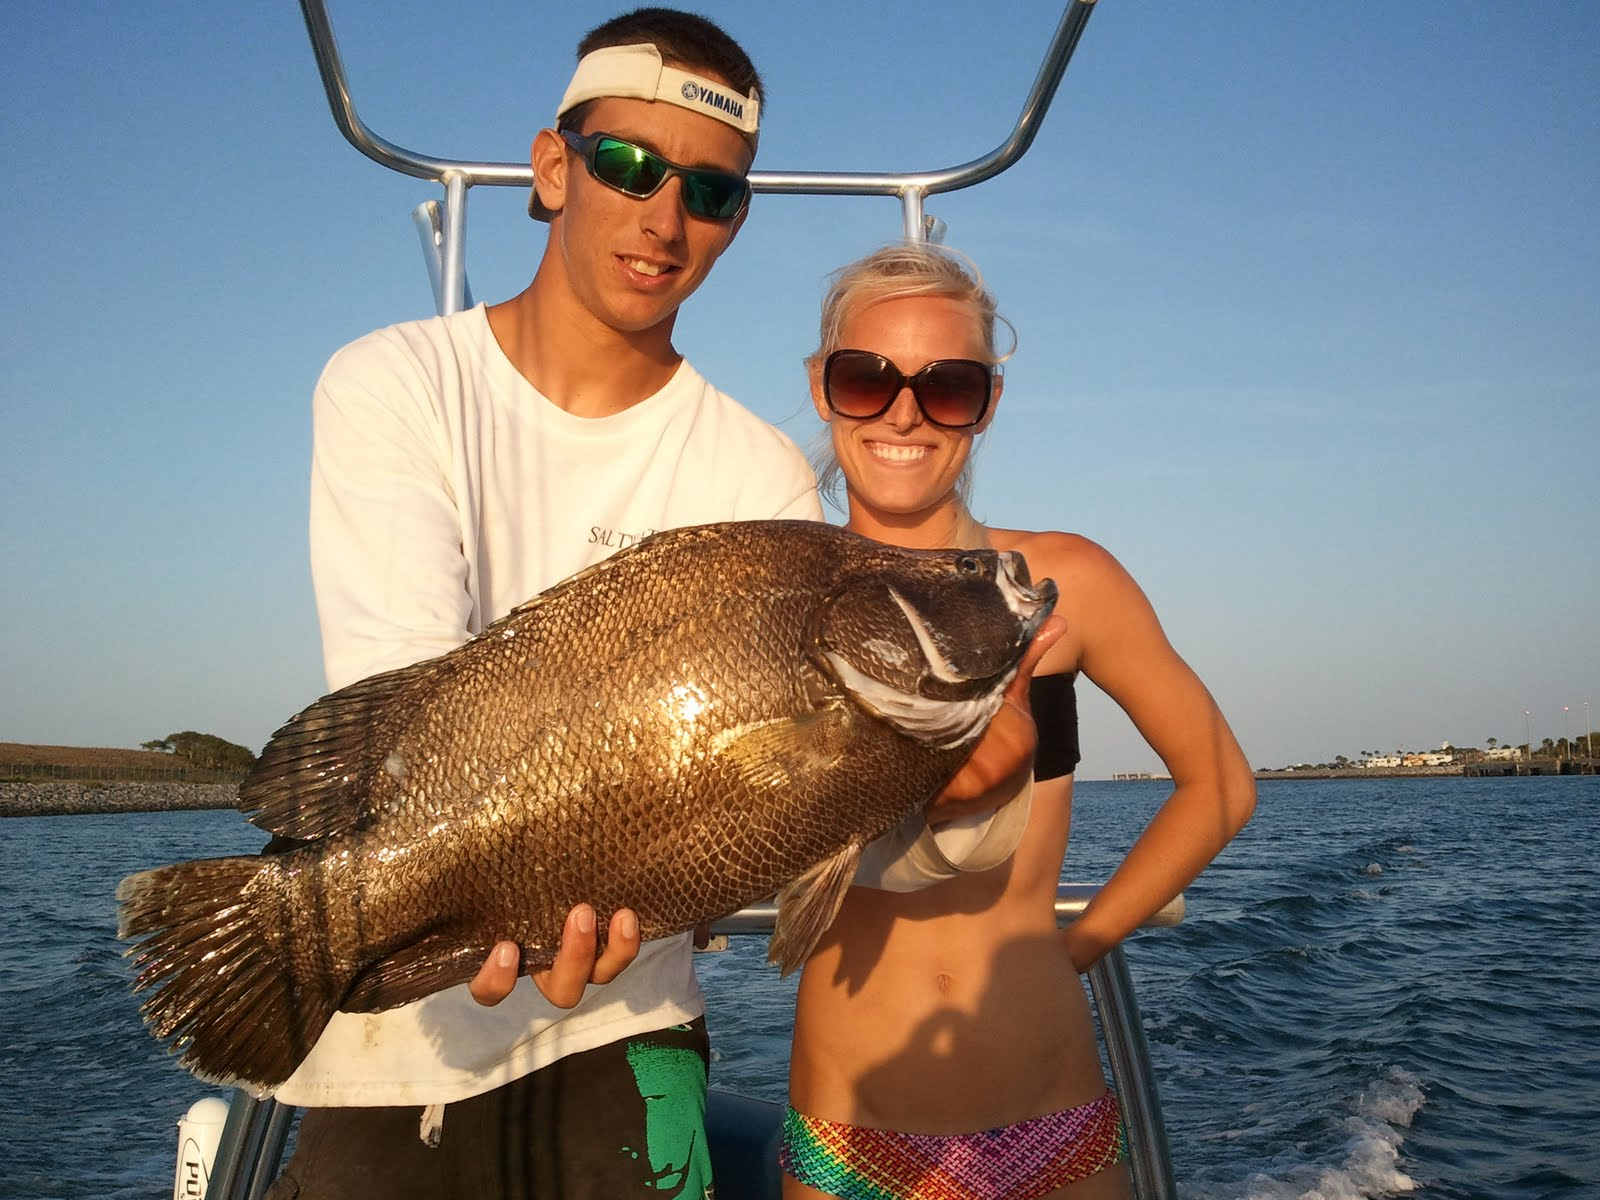 Fin fly fishing charters snook fishing with the slow n for Fly girl fishing charters